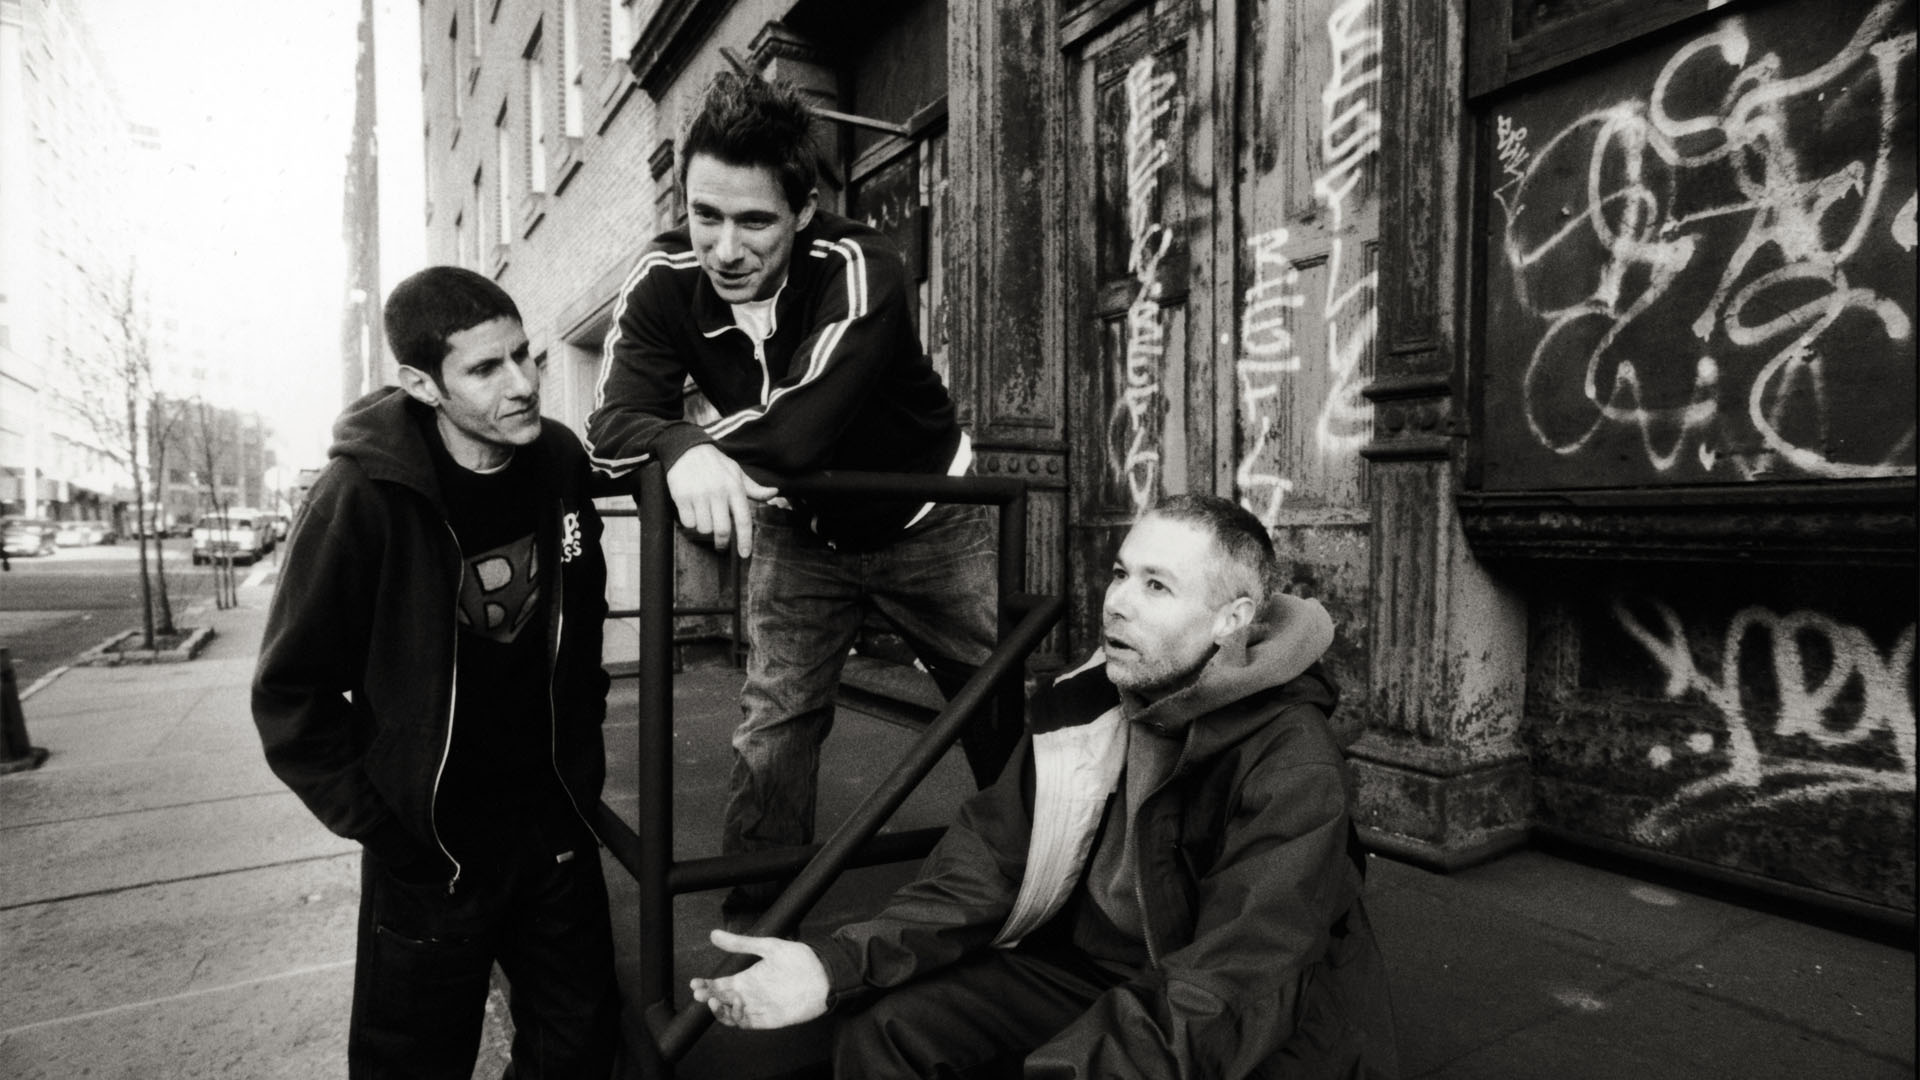 Fall Out Boy Laptop Wallpaper Beastie Boys Full Hd Wallpaper And Background Image